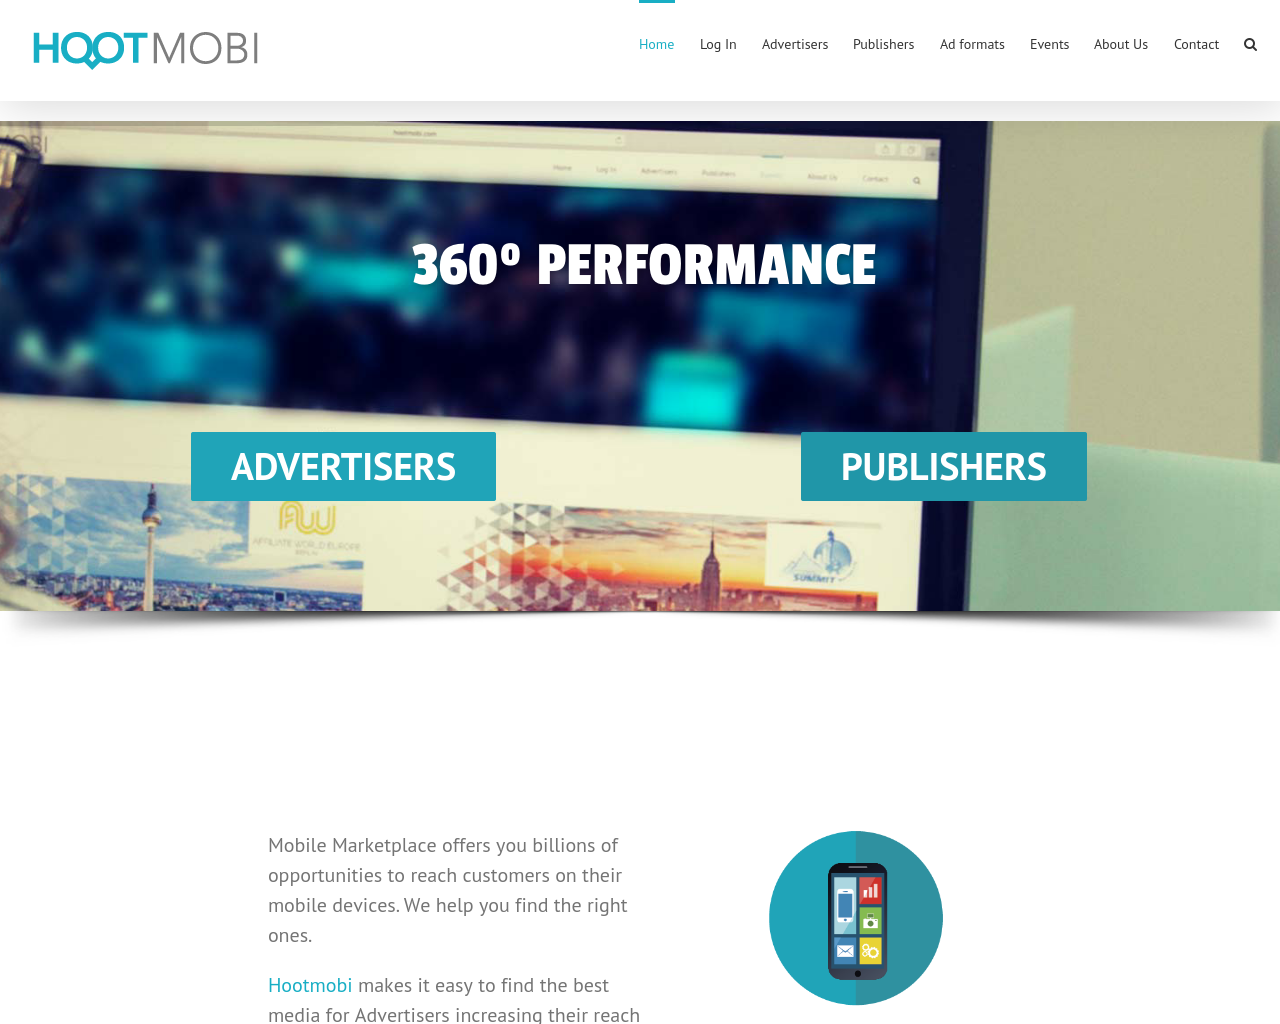 Hootmobi-Advertising-Reviews-Pricing